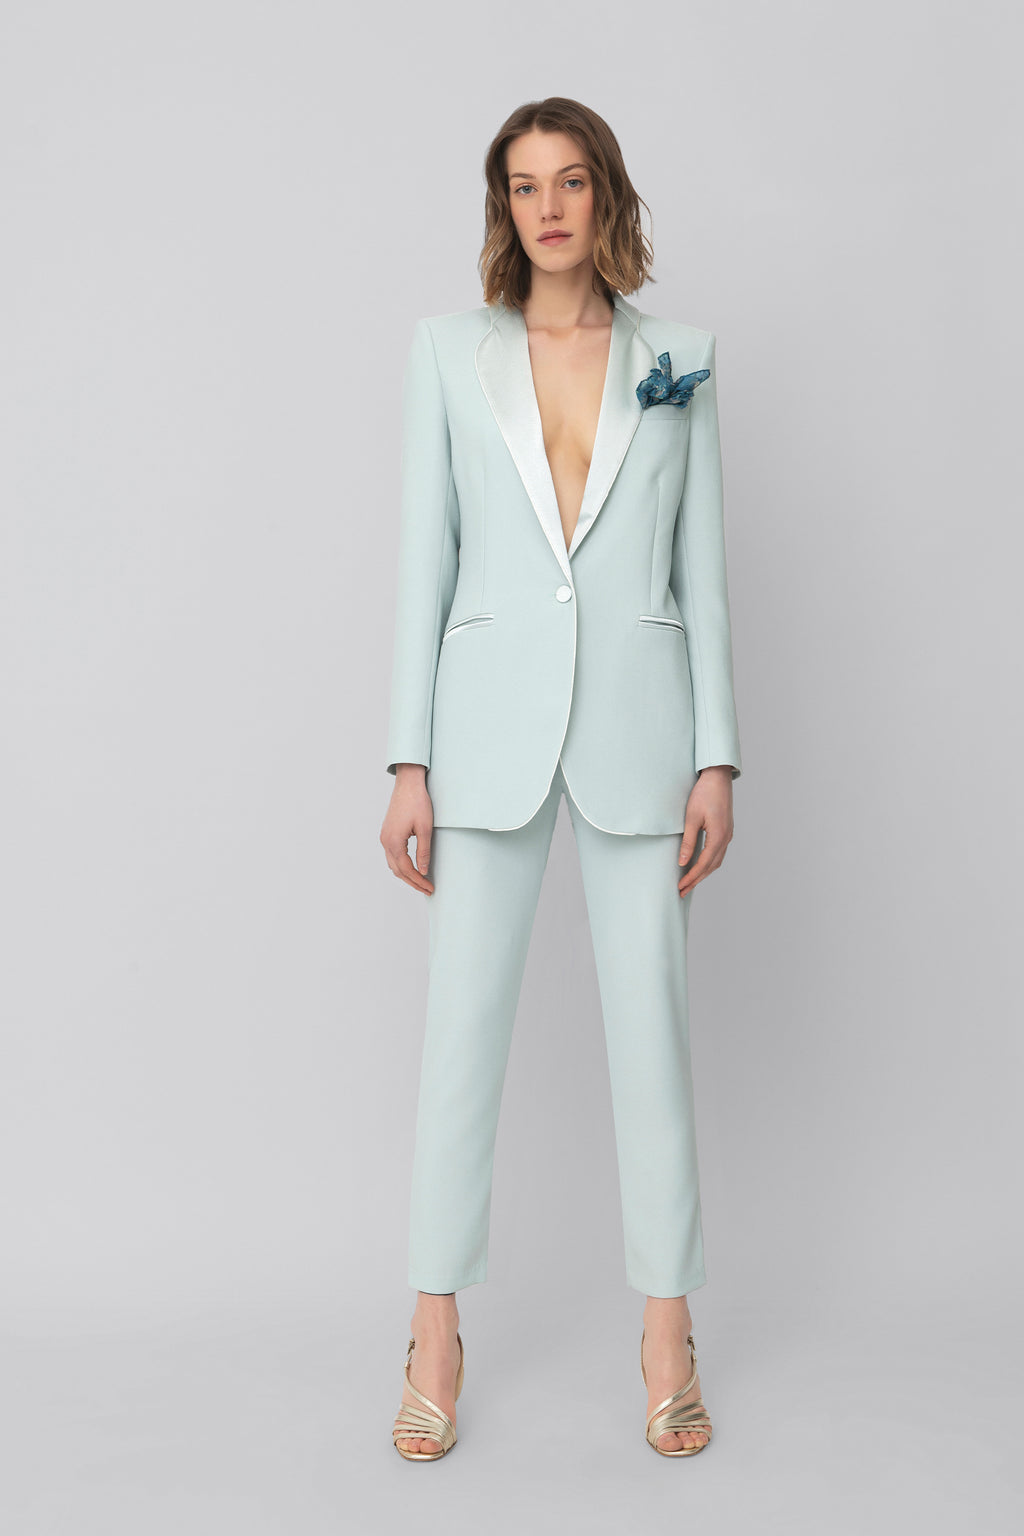 The Teal Smoking Blazer